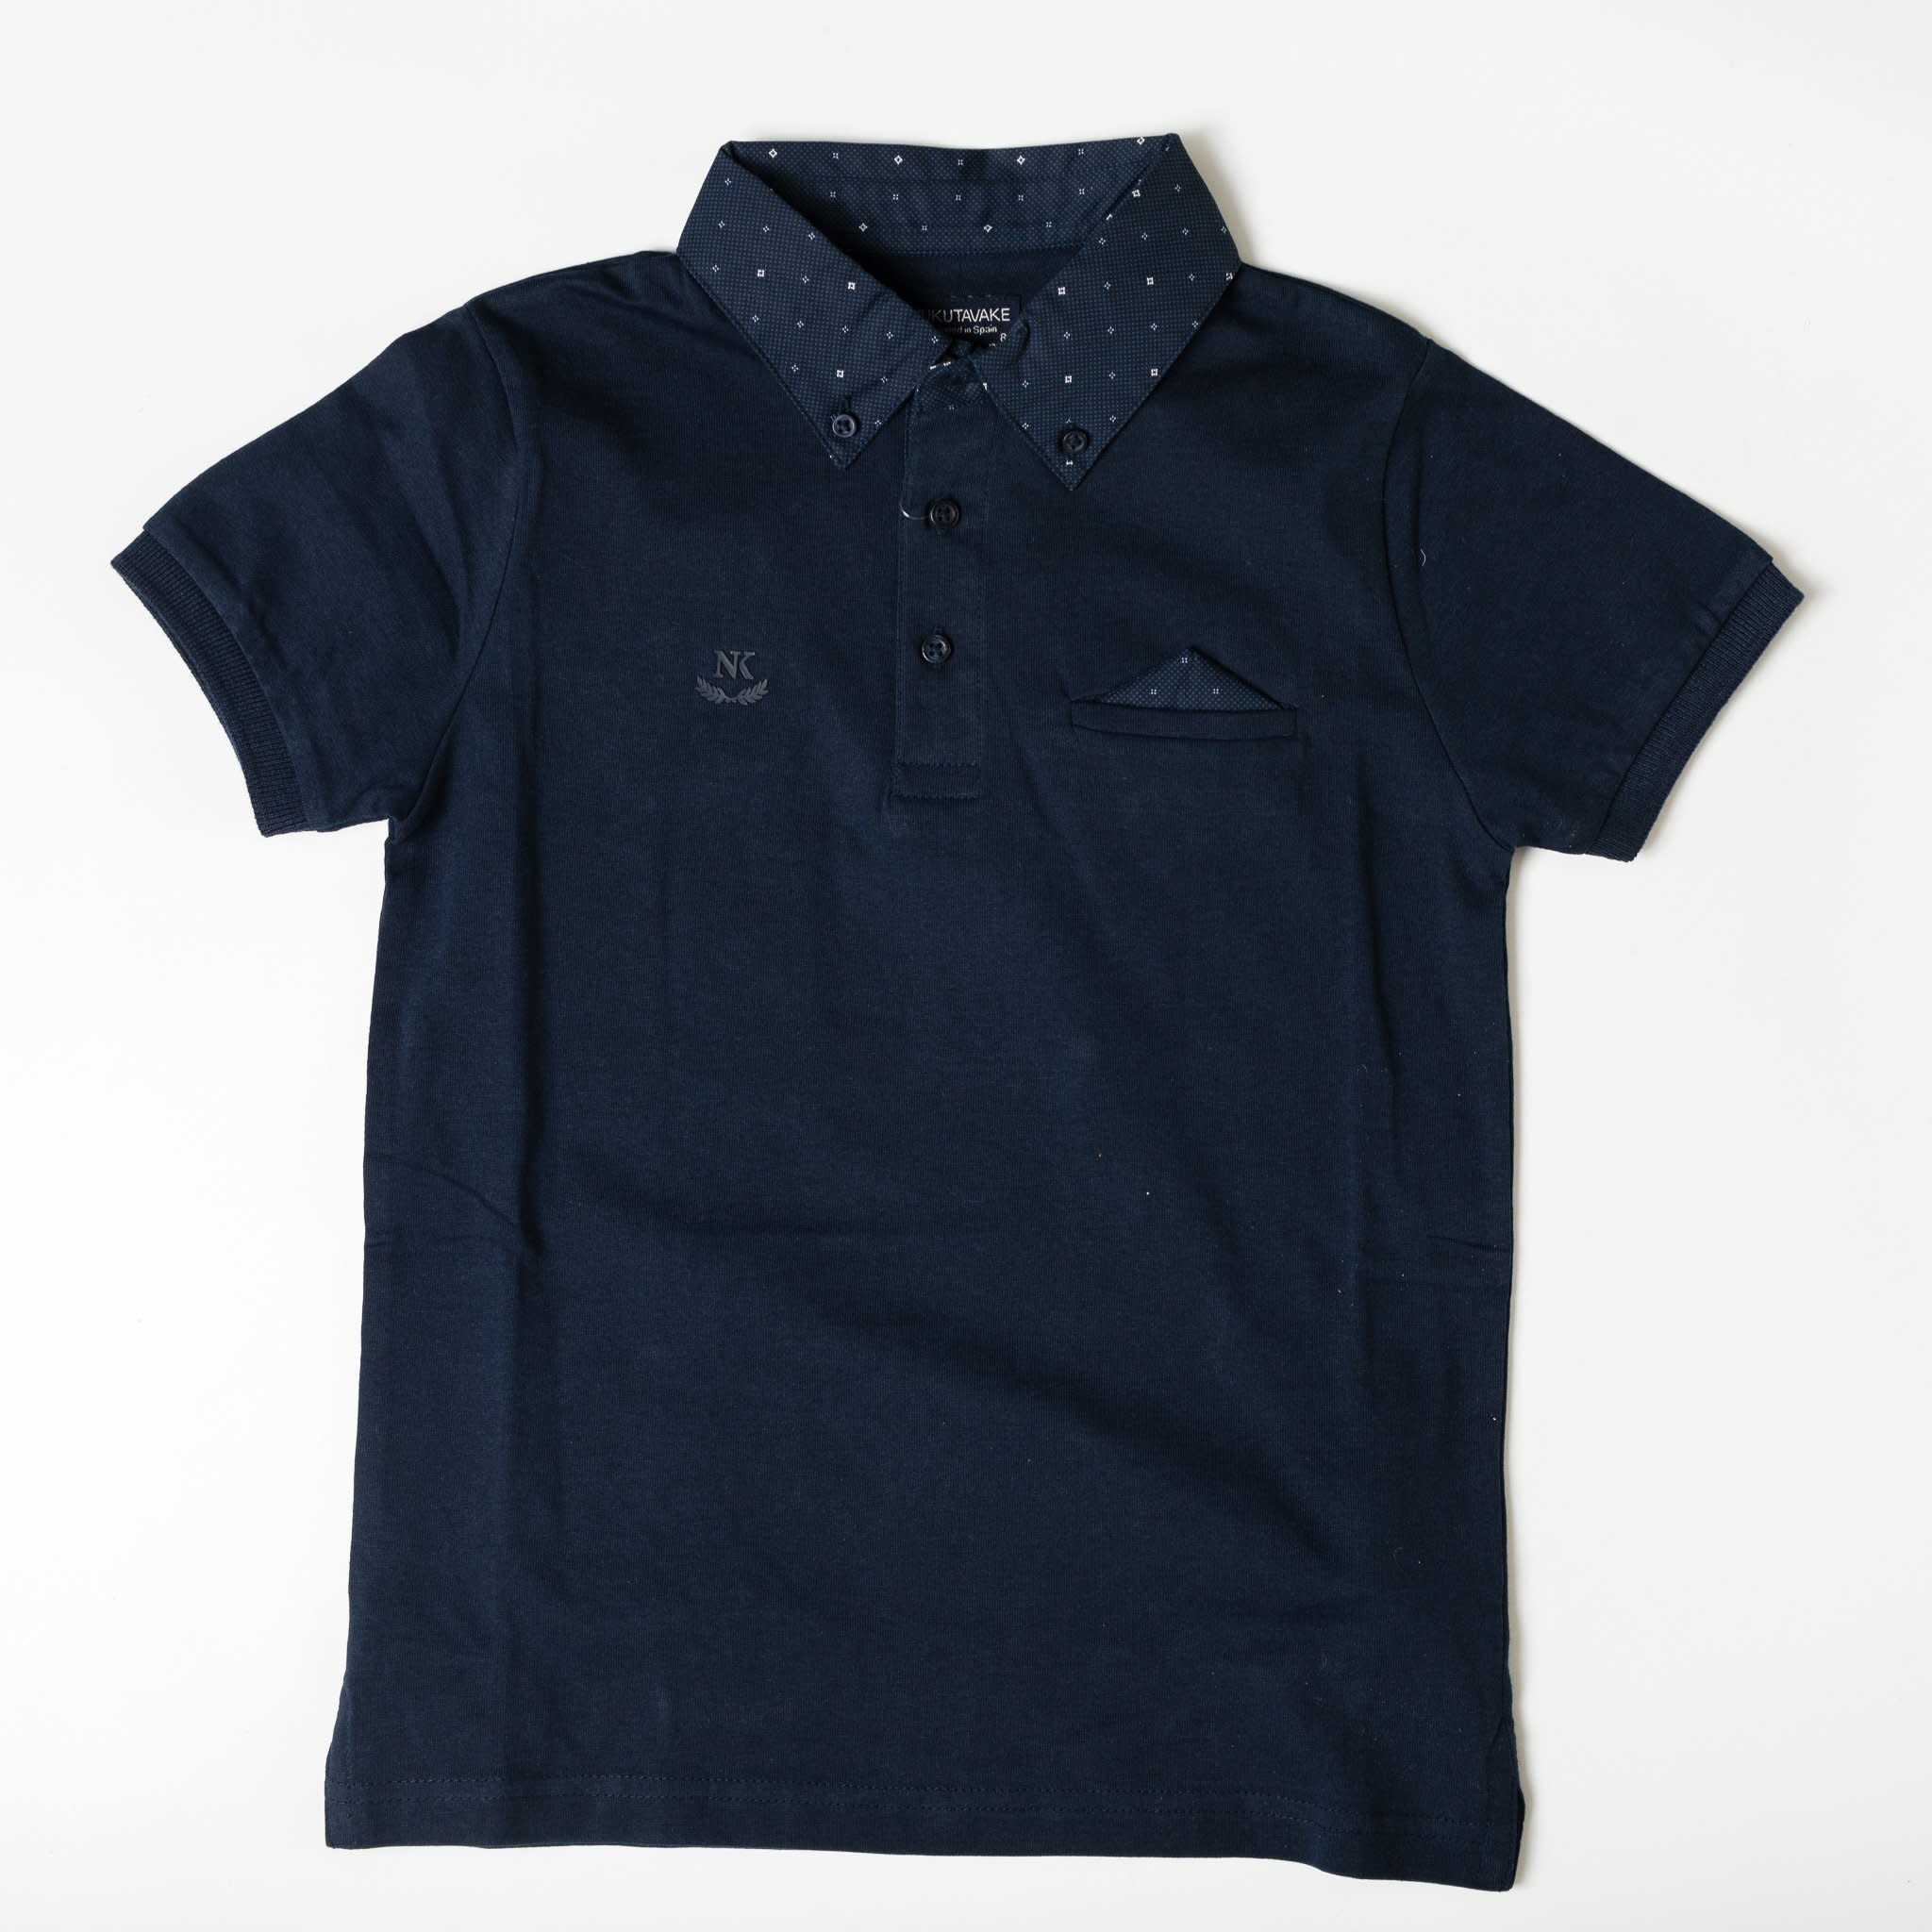 Dressy Polo with Pocket Square